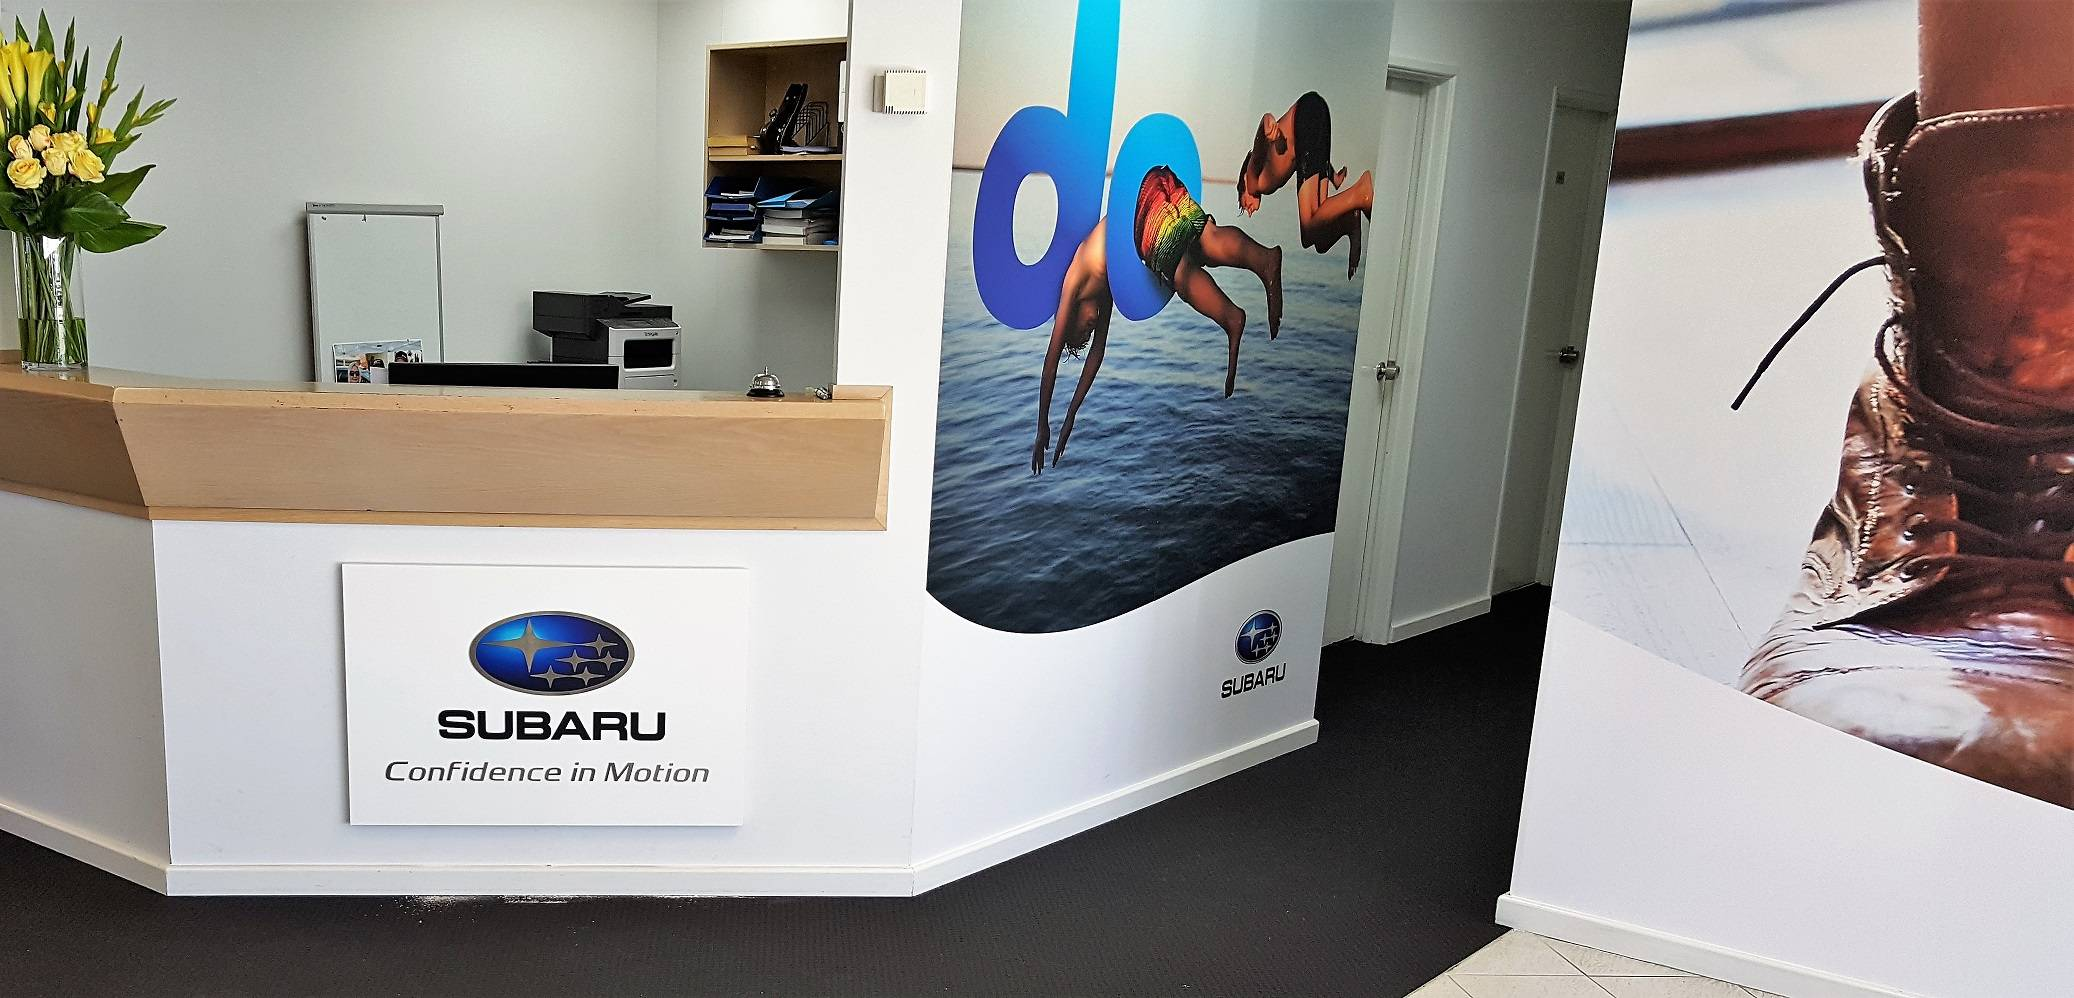 Digitally printed wall vinyl Subaru